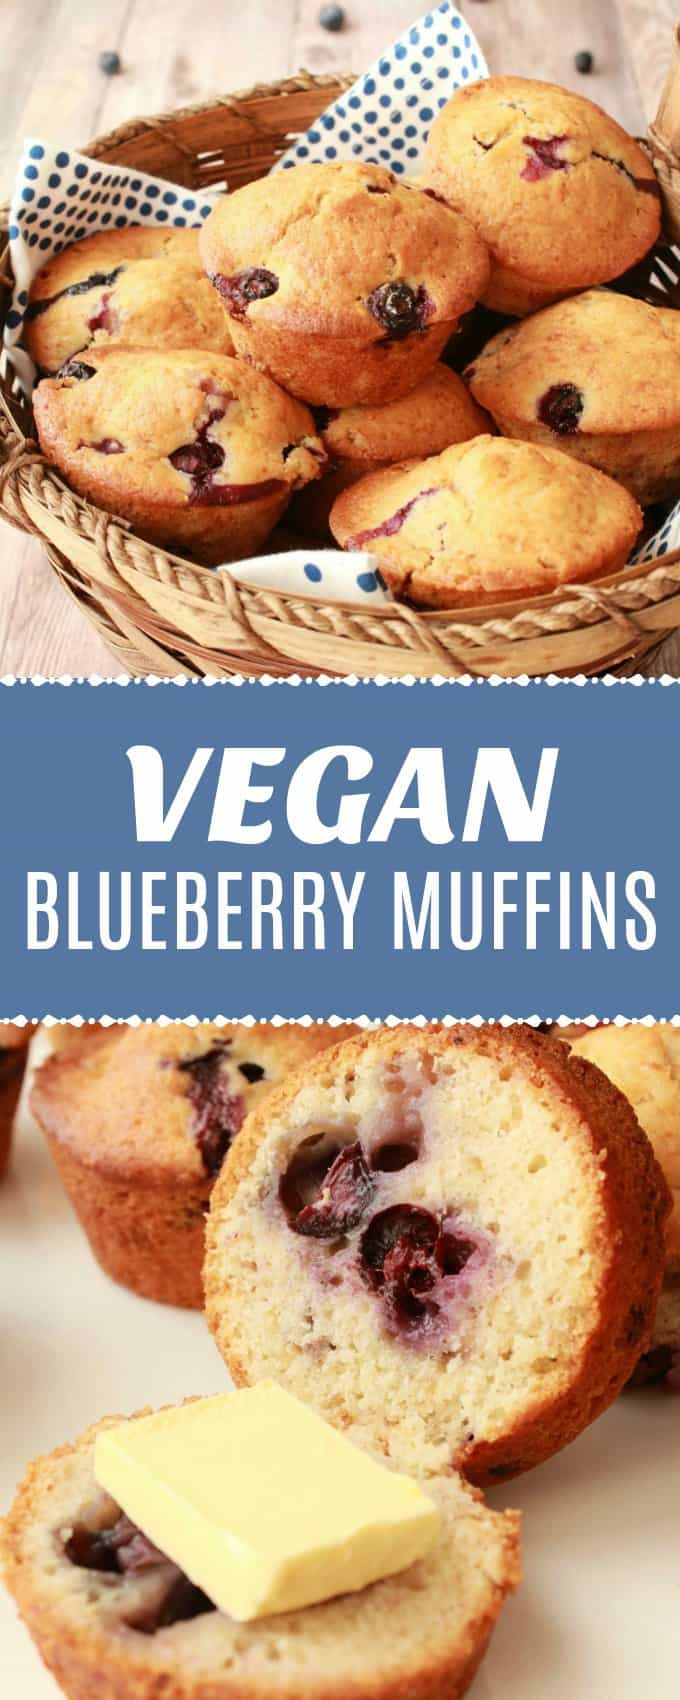 Easy and delicious vegan blueberry muffins. These moist and perfectly sweet muffins are packed with blueberries and simply divine spread with vegan butter. | lovingitvegan.com